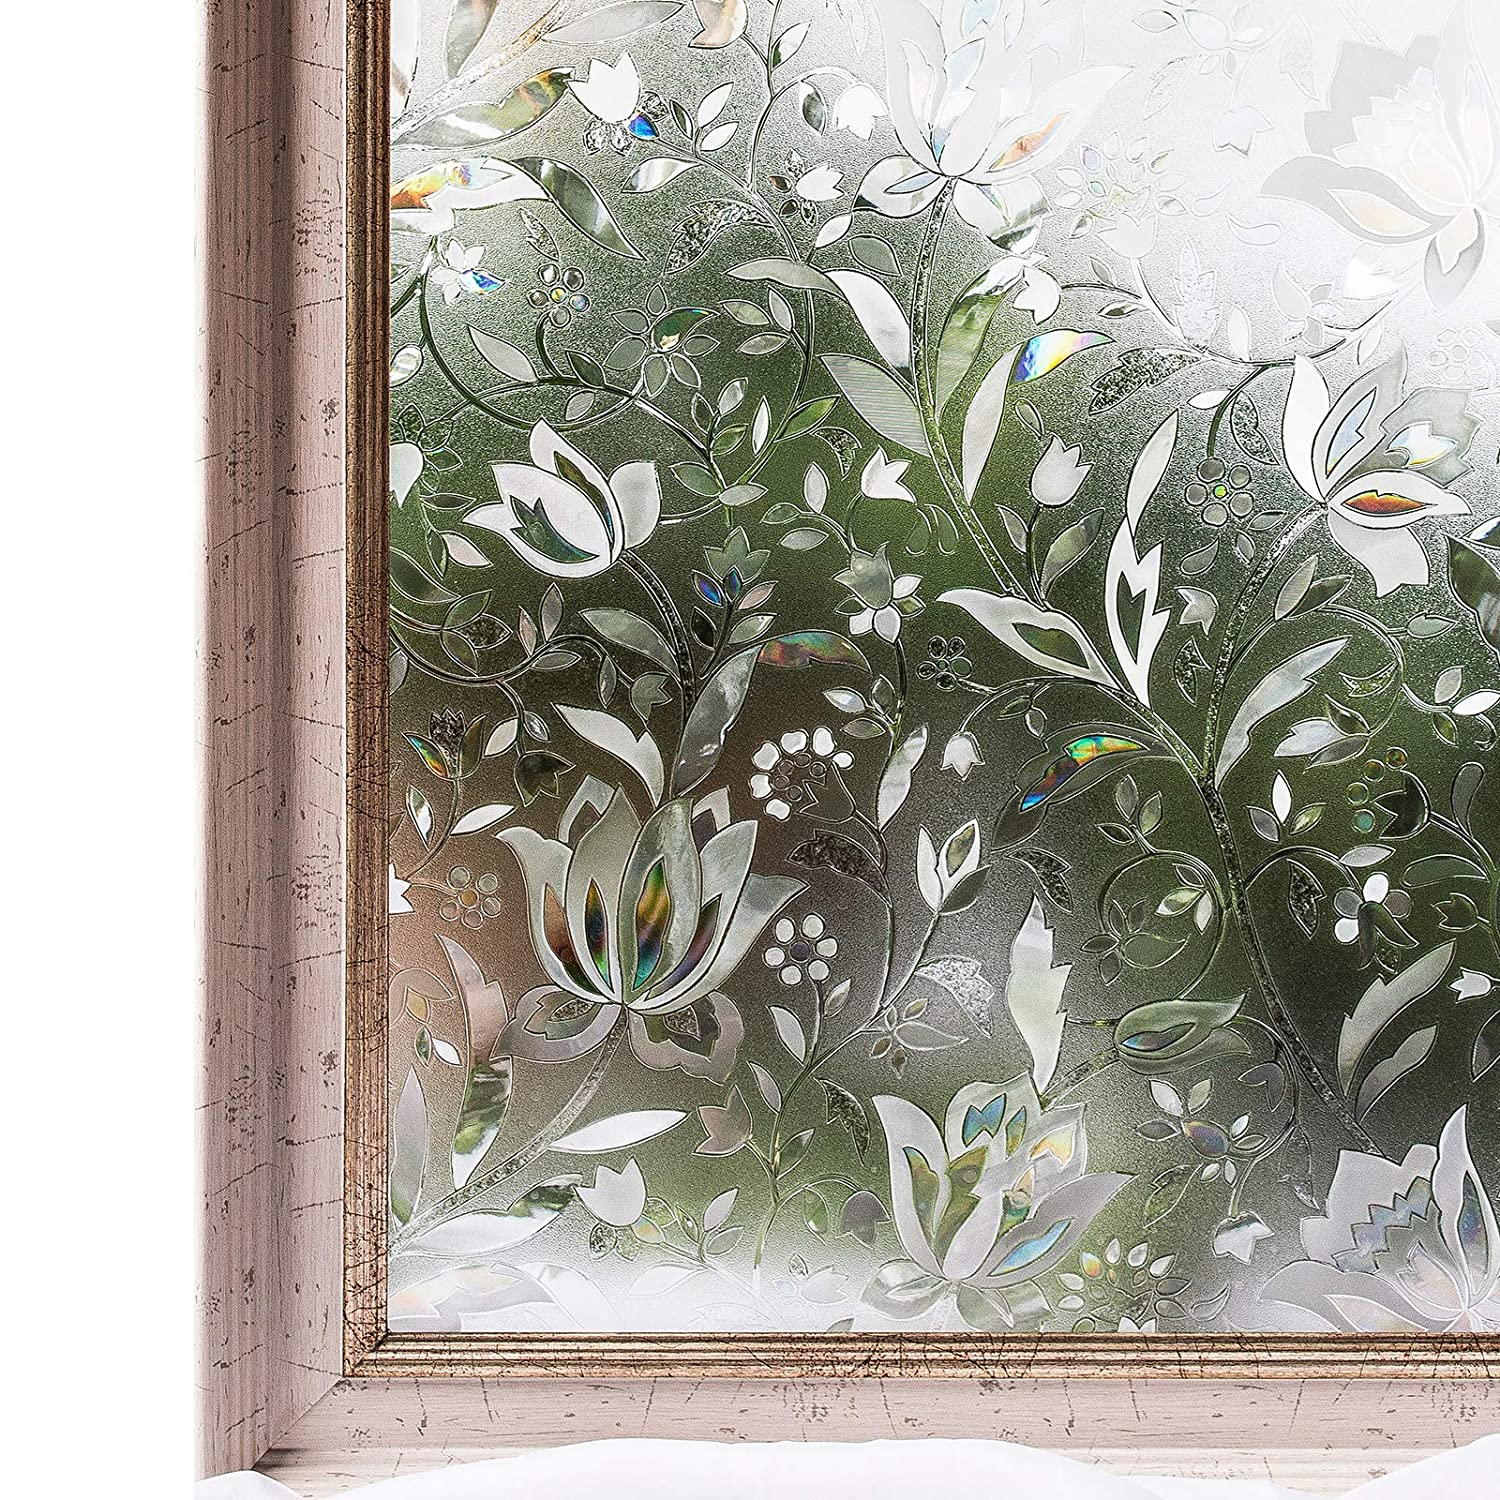 CottonColors Privacy Frosted Window Film, No Glue 3D Static Decorative Non Adhesive Non Toxic Anti UV 11.8In*78.7In(30CM x 200Cm) Glassc Clings SuperRider Co. Ltd